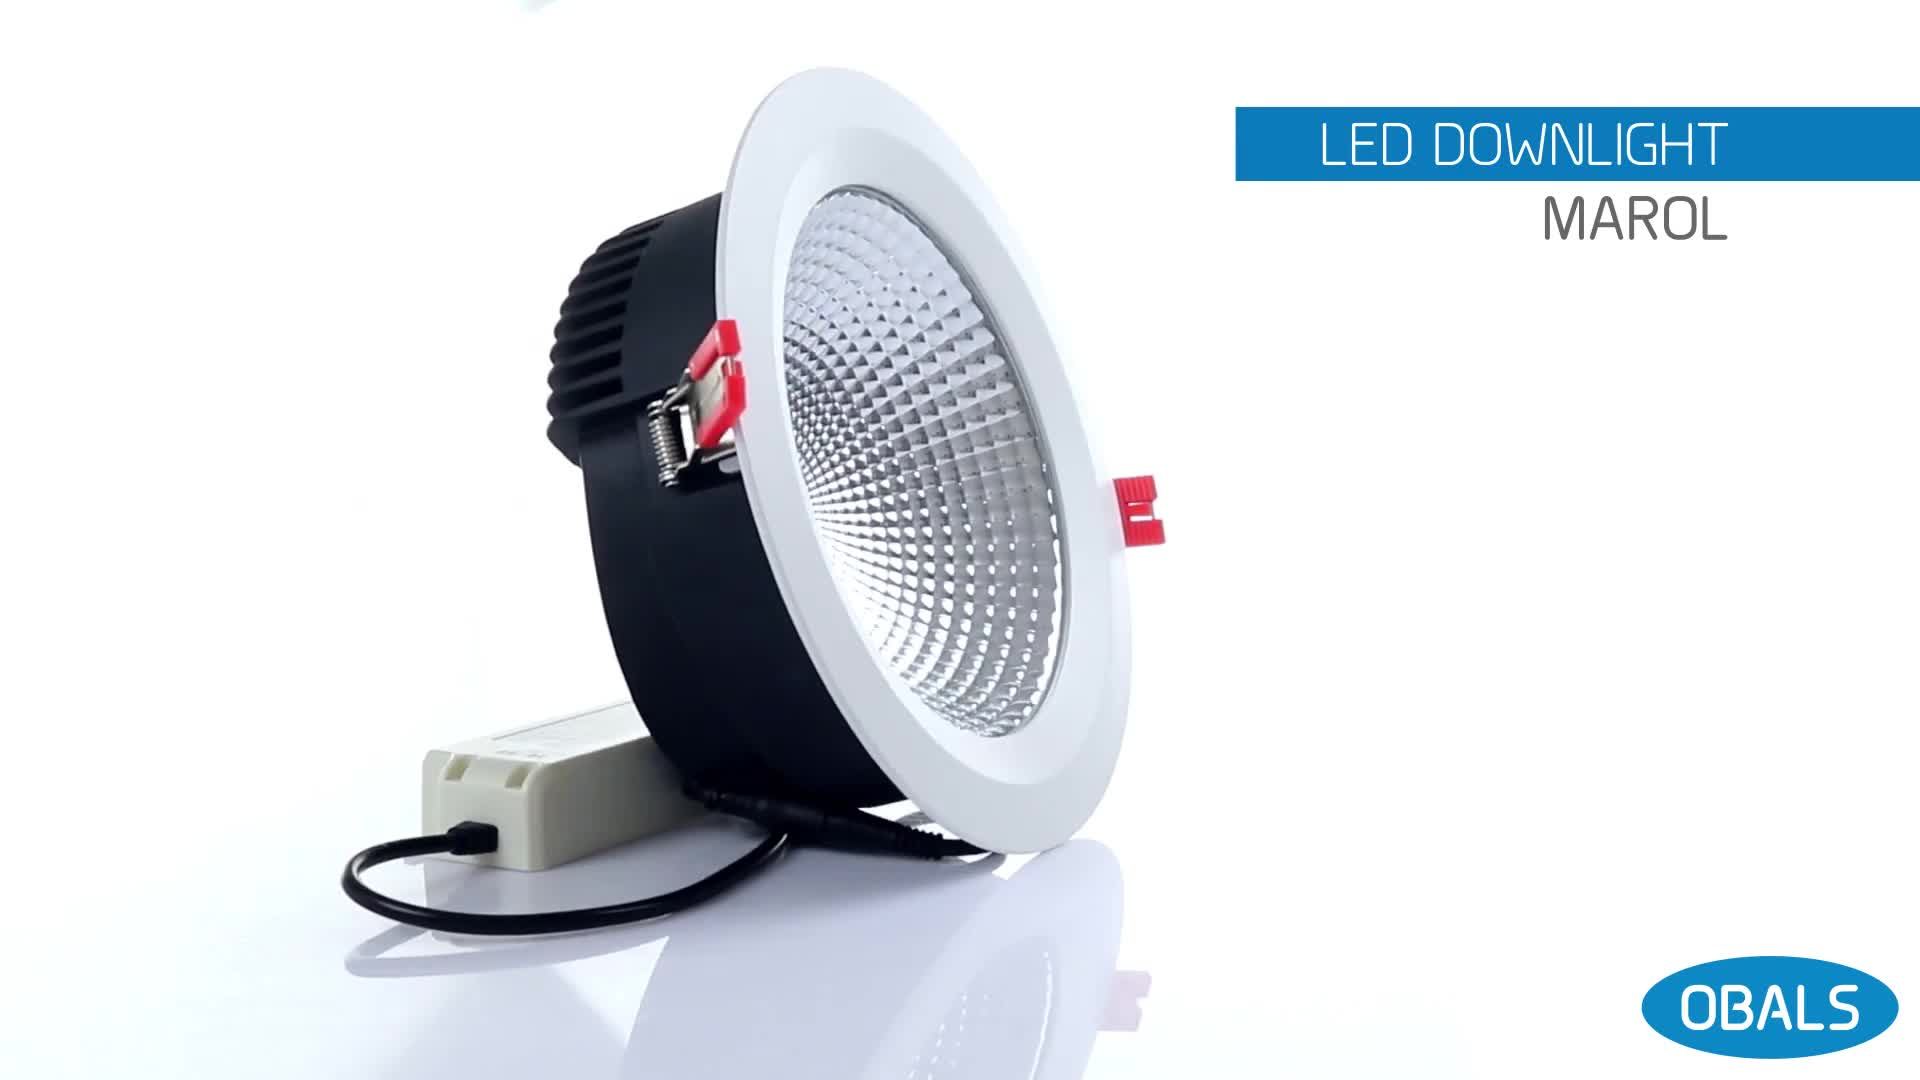 Obals 12W 5 Inch CE RoHs SAA SMD LED Ceiling Lamp Trimless Three-Color Temperature Downlight LED